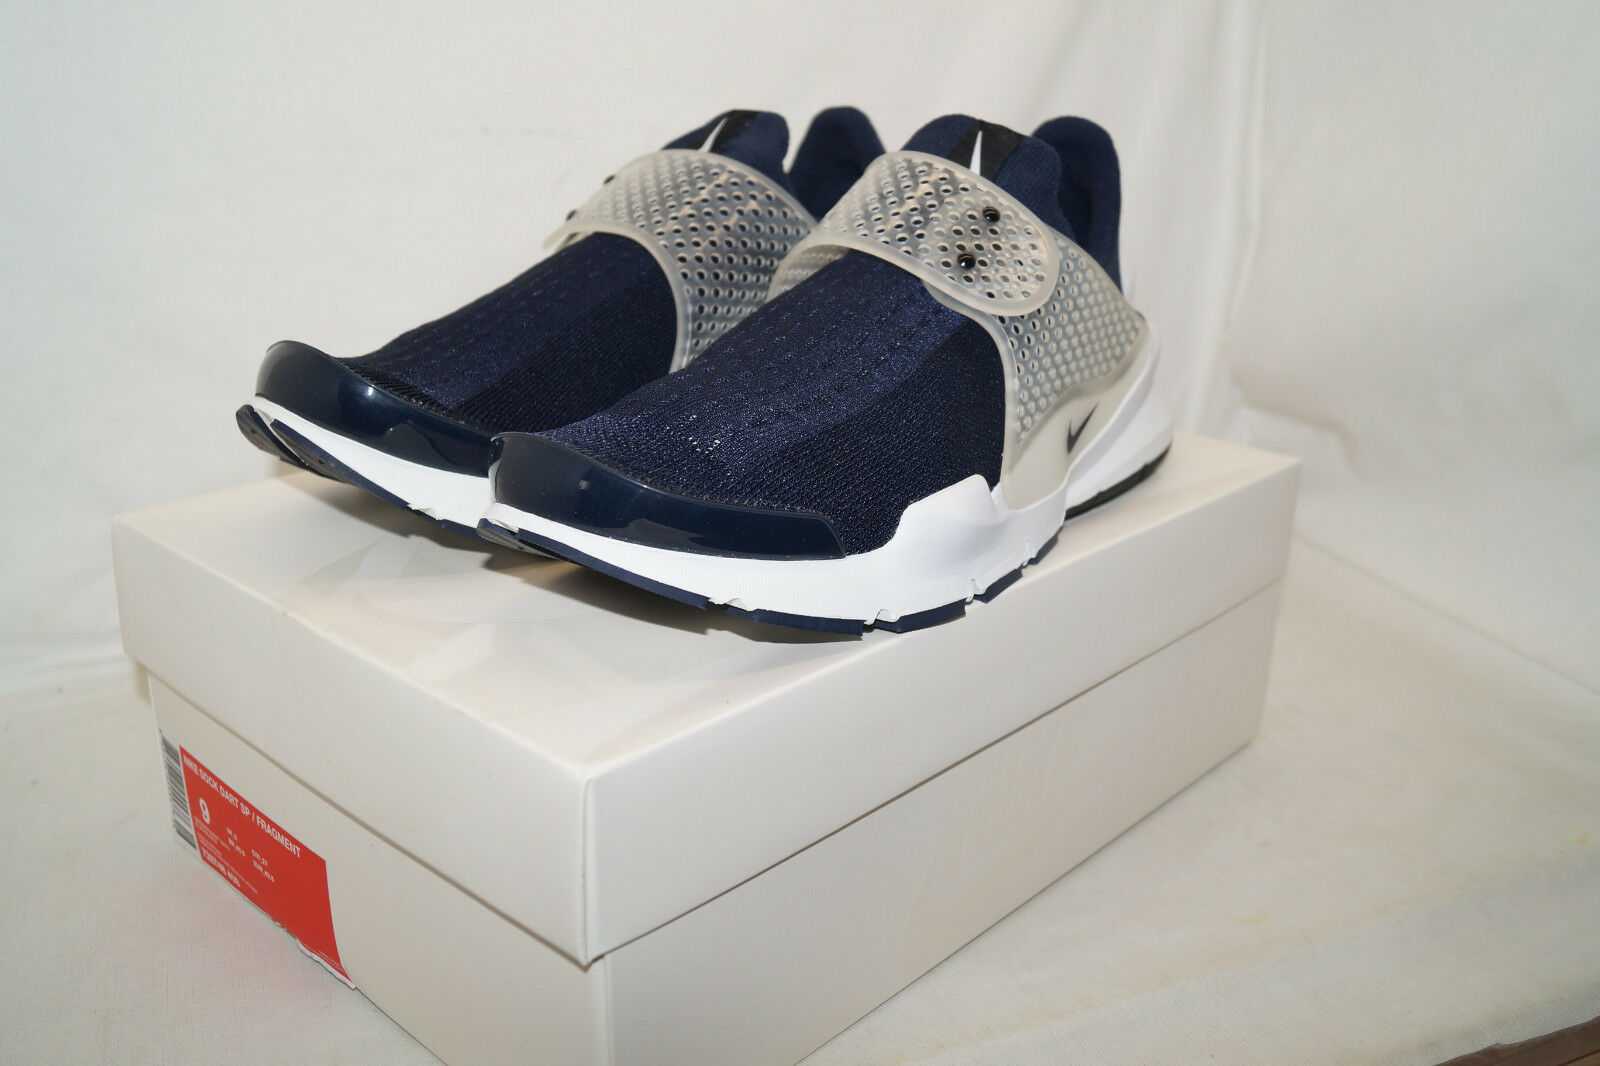 NIKE LAB SOCK DART SP x FRAGMENT Gr.42,5 UK.8  728748 400 obsidian blau